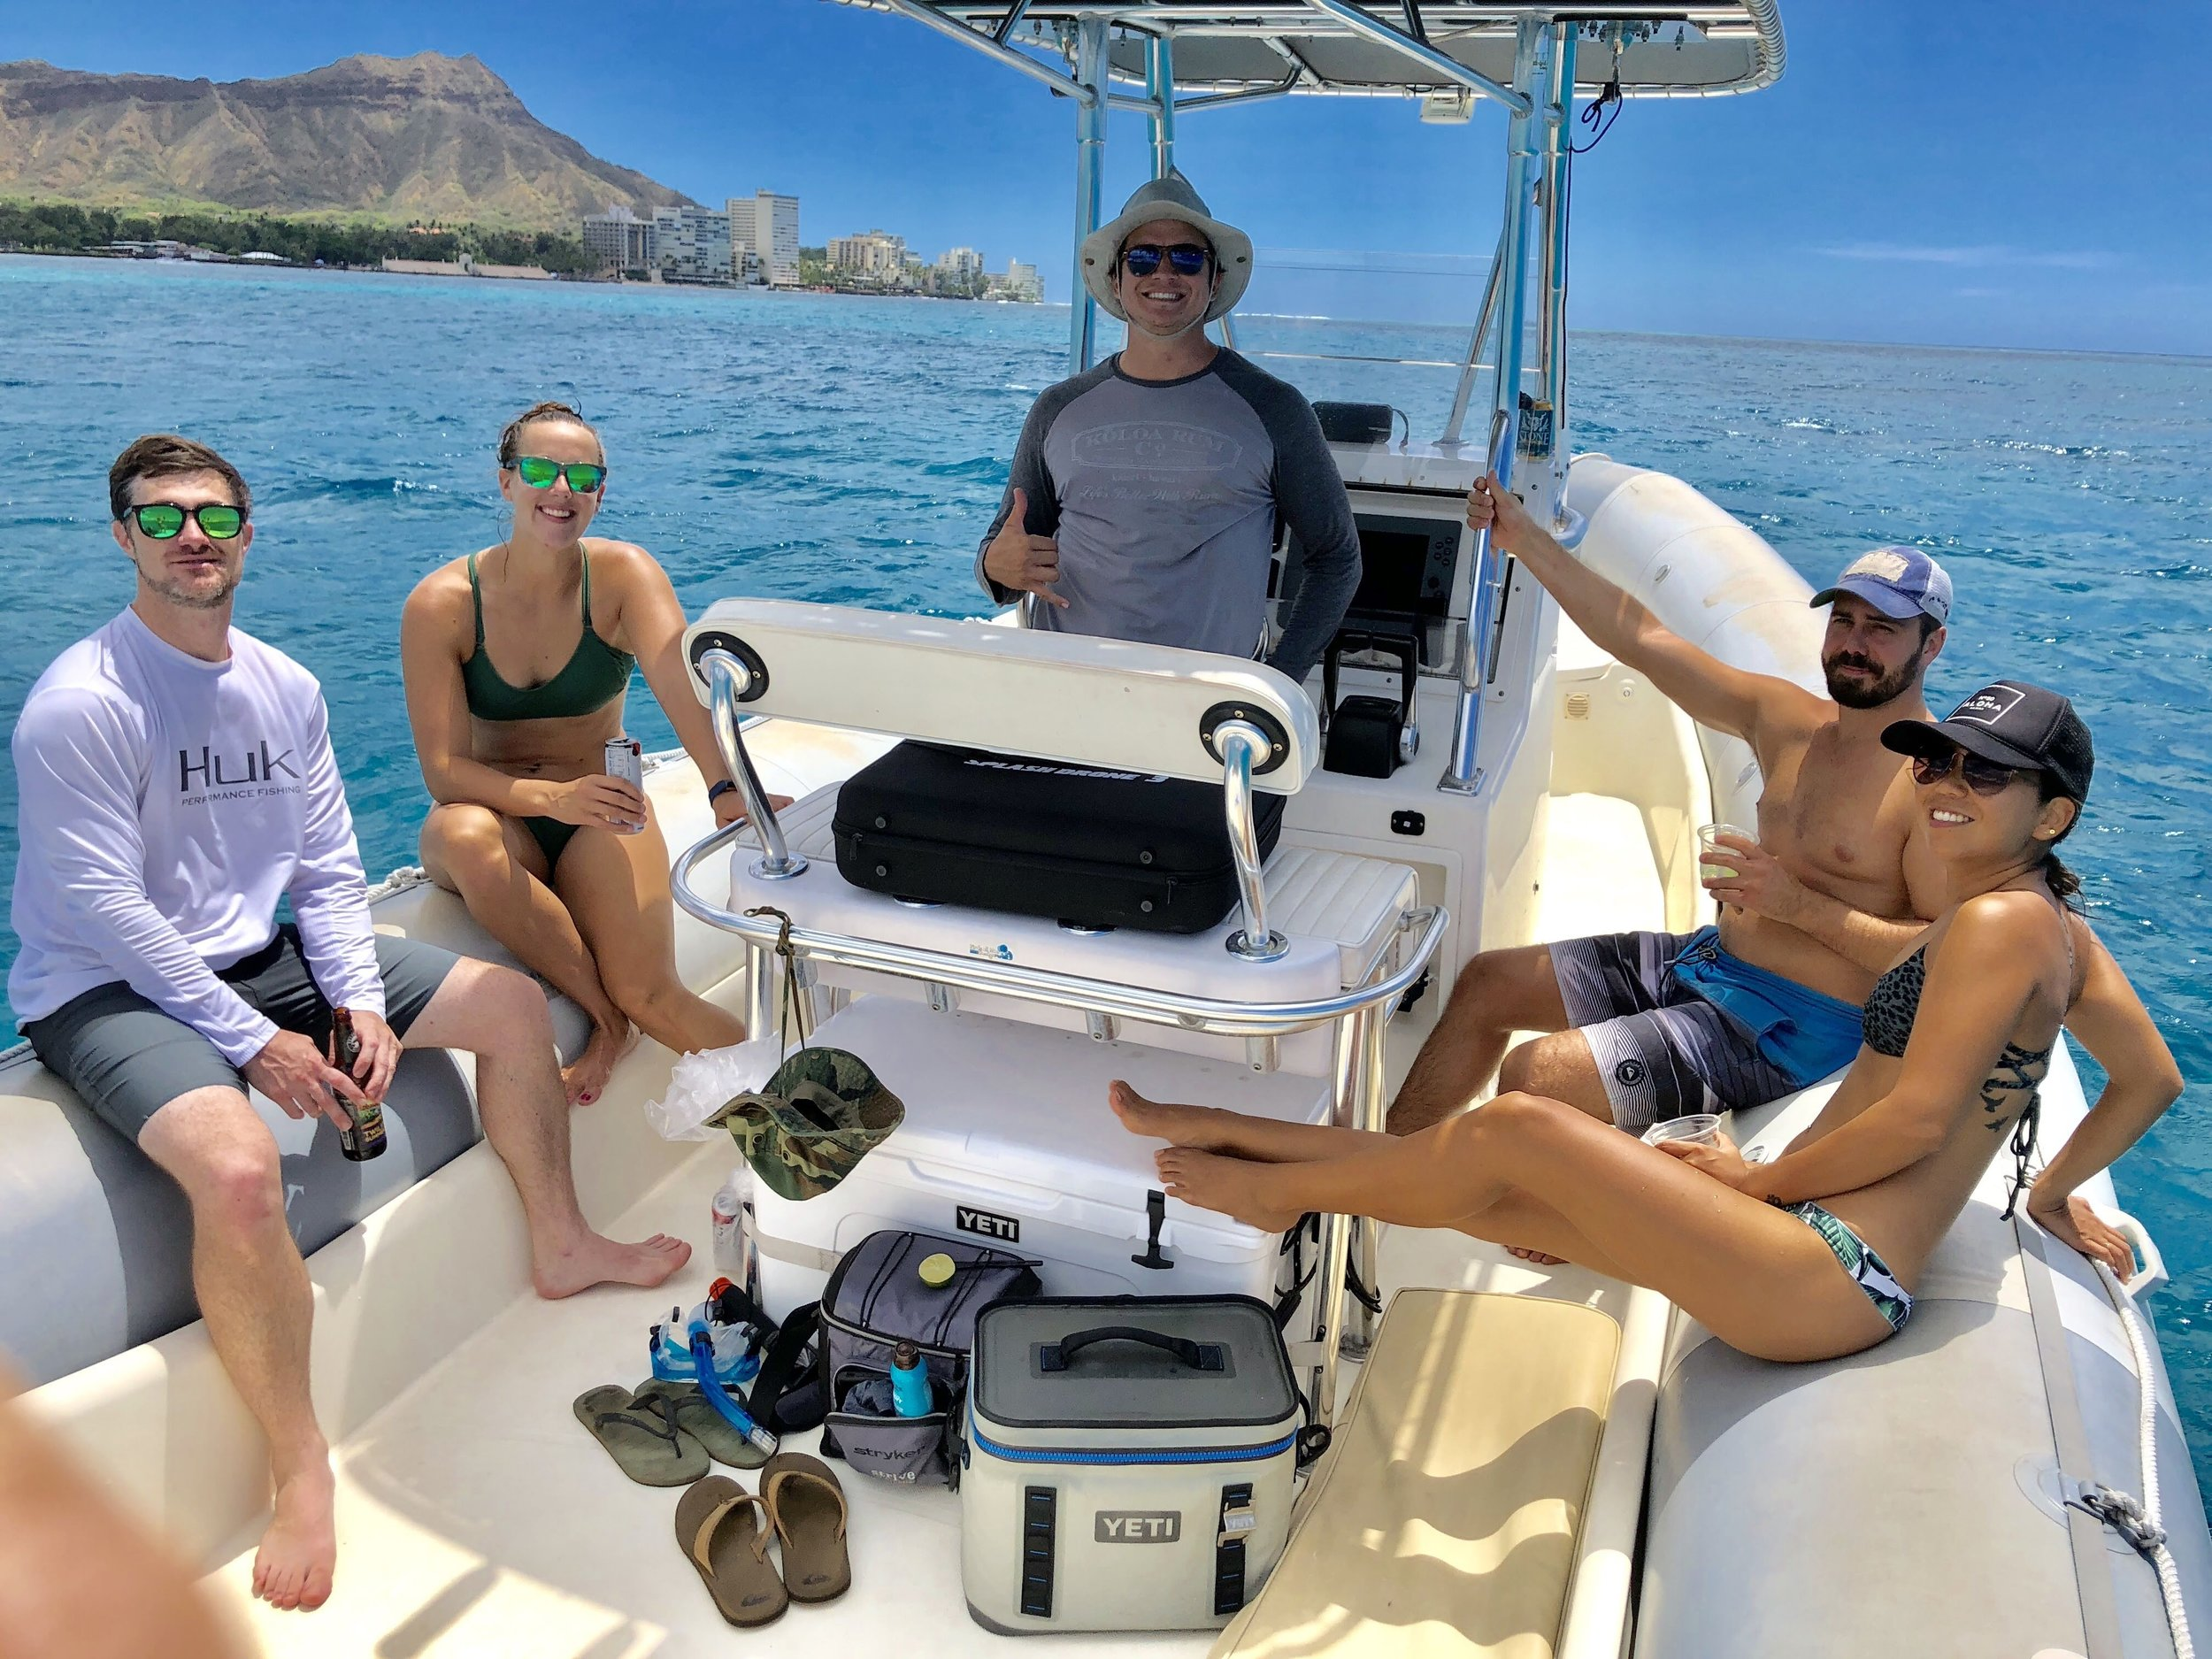 charter boat crew and guests enjoying a private boat tour in Waikiki near Diamond Head